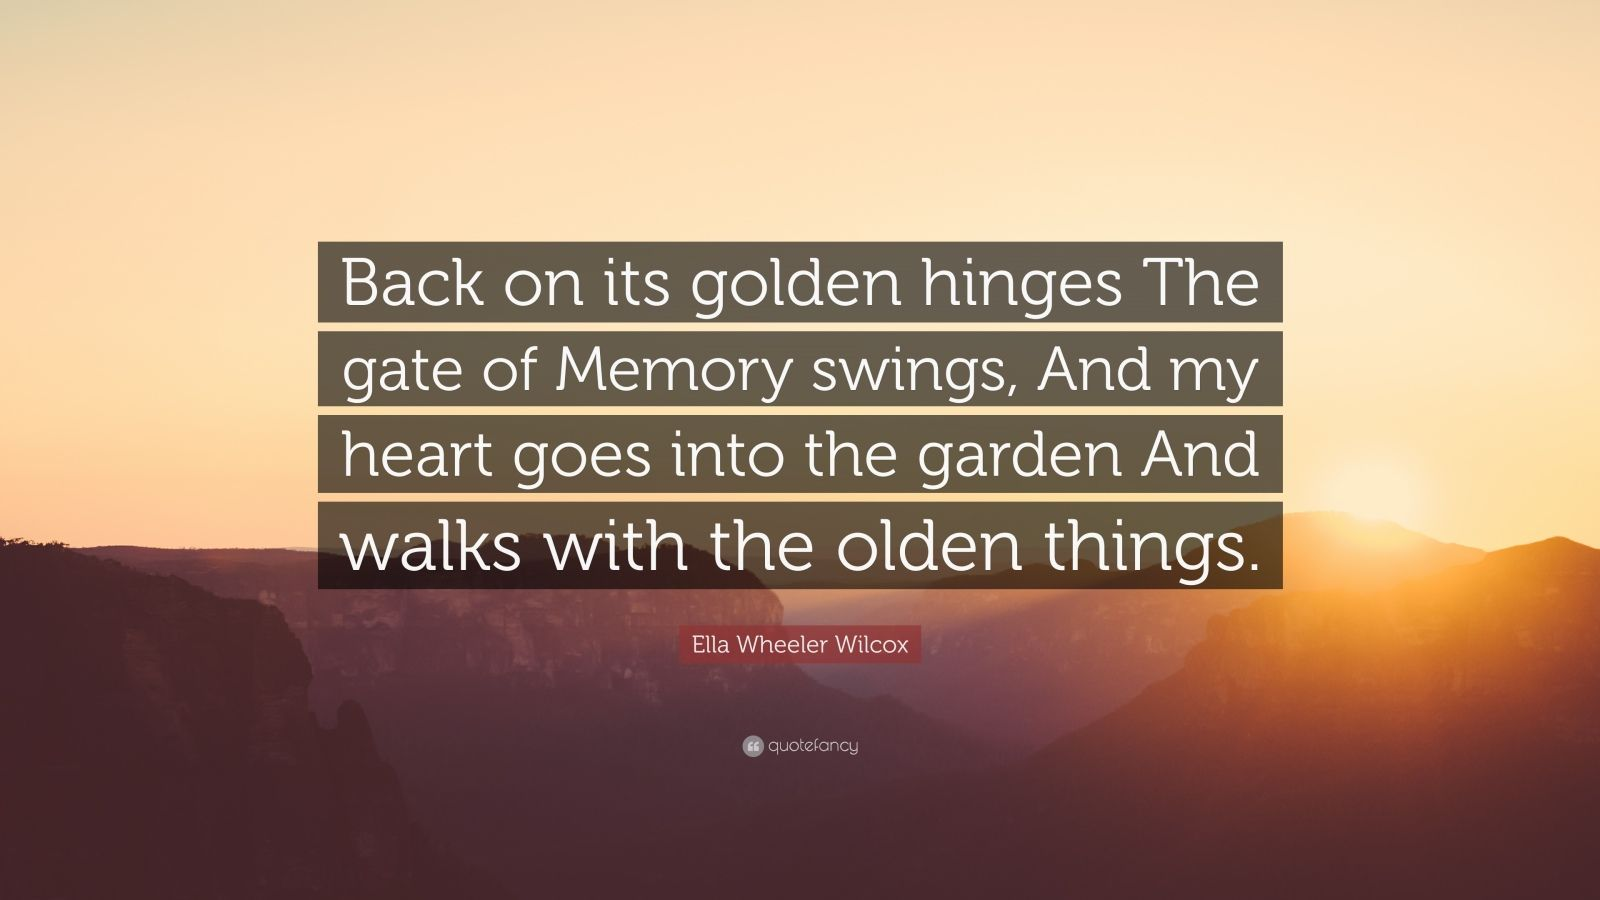 """Ella Wheeler Wilcox Quote: """"Back on its golden hinges The gate of Memory swings, And my heart goes into the garden And walks with the olden things."""""""